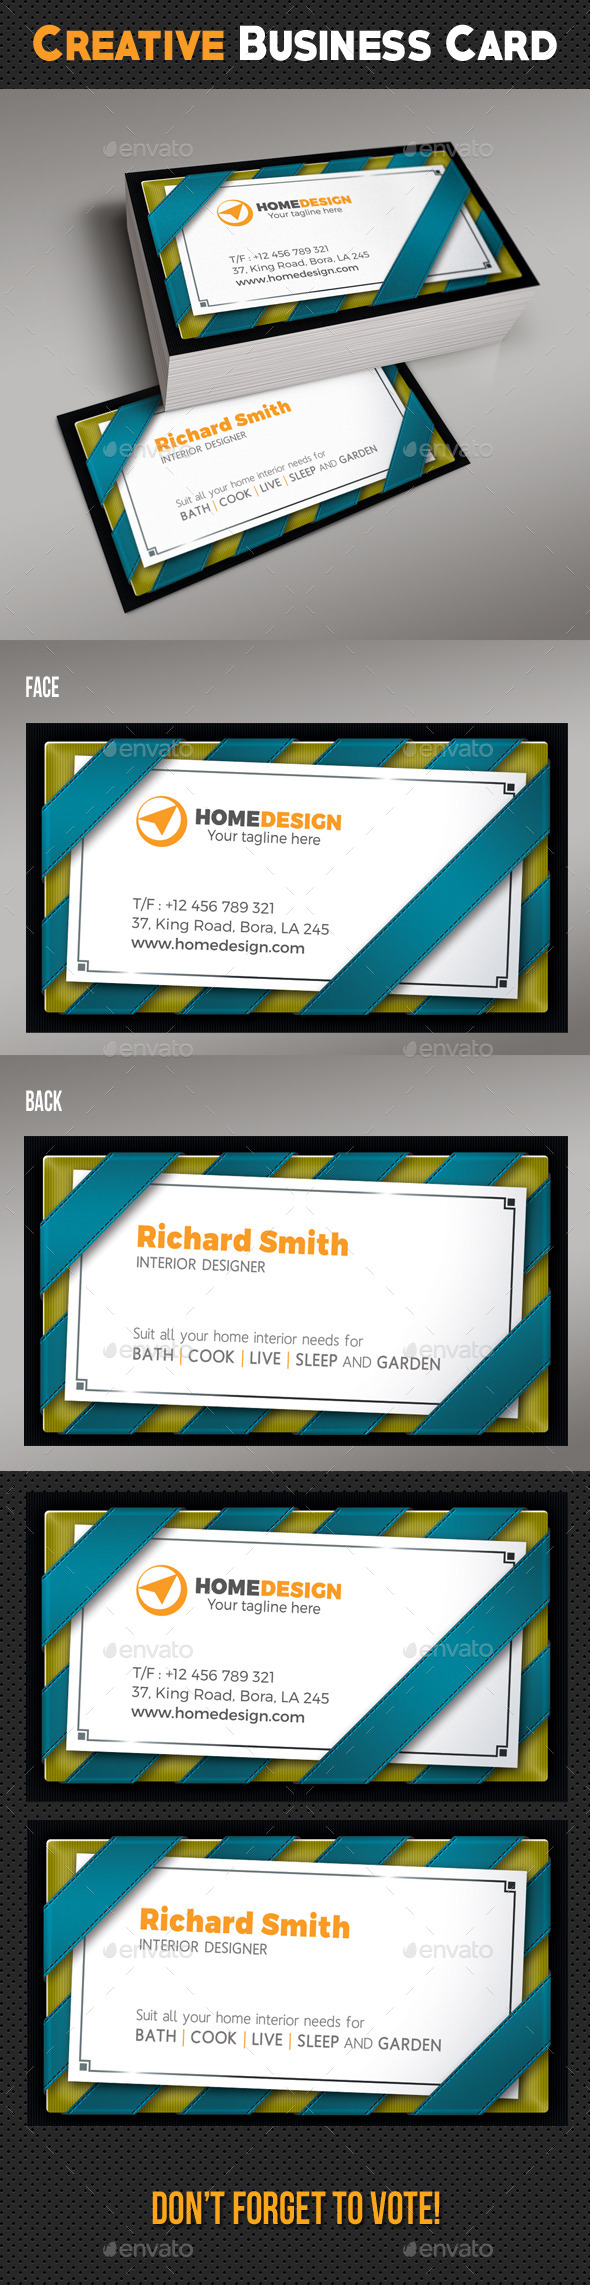 Creative Business Card 05